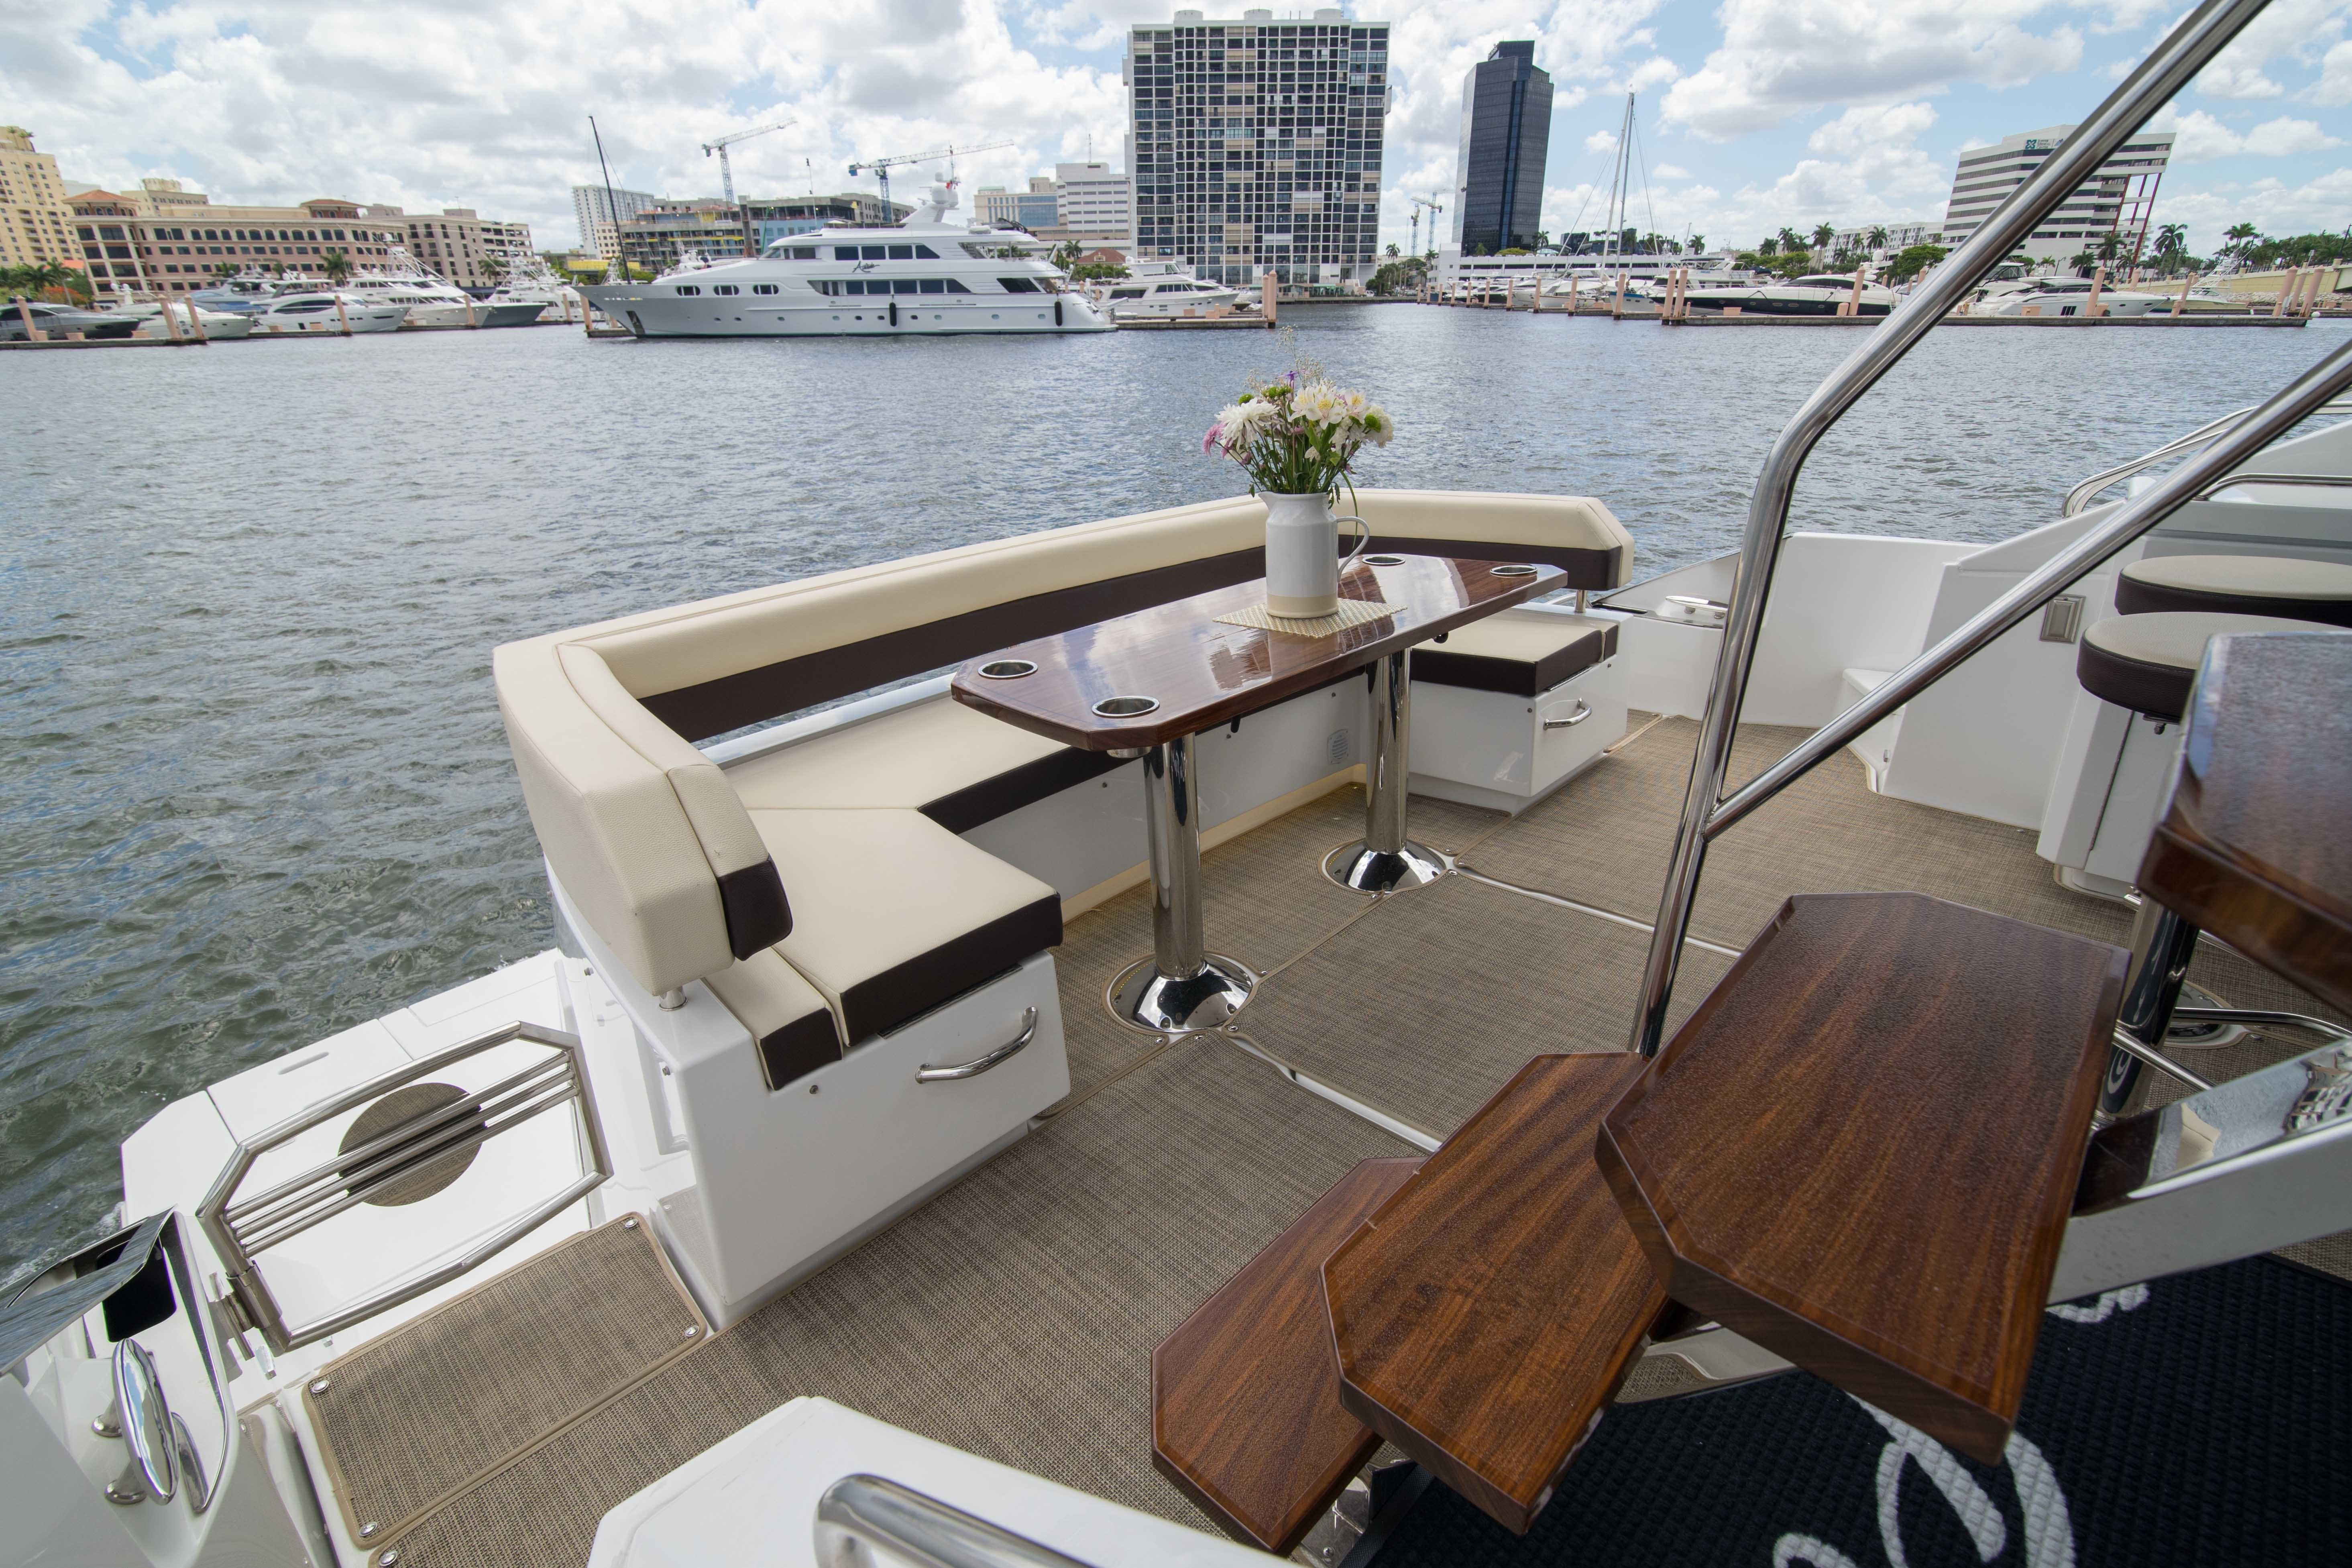 60 Cruisers Yachts On Point 2018 West Palm Beach Denison Yacht Sales